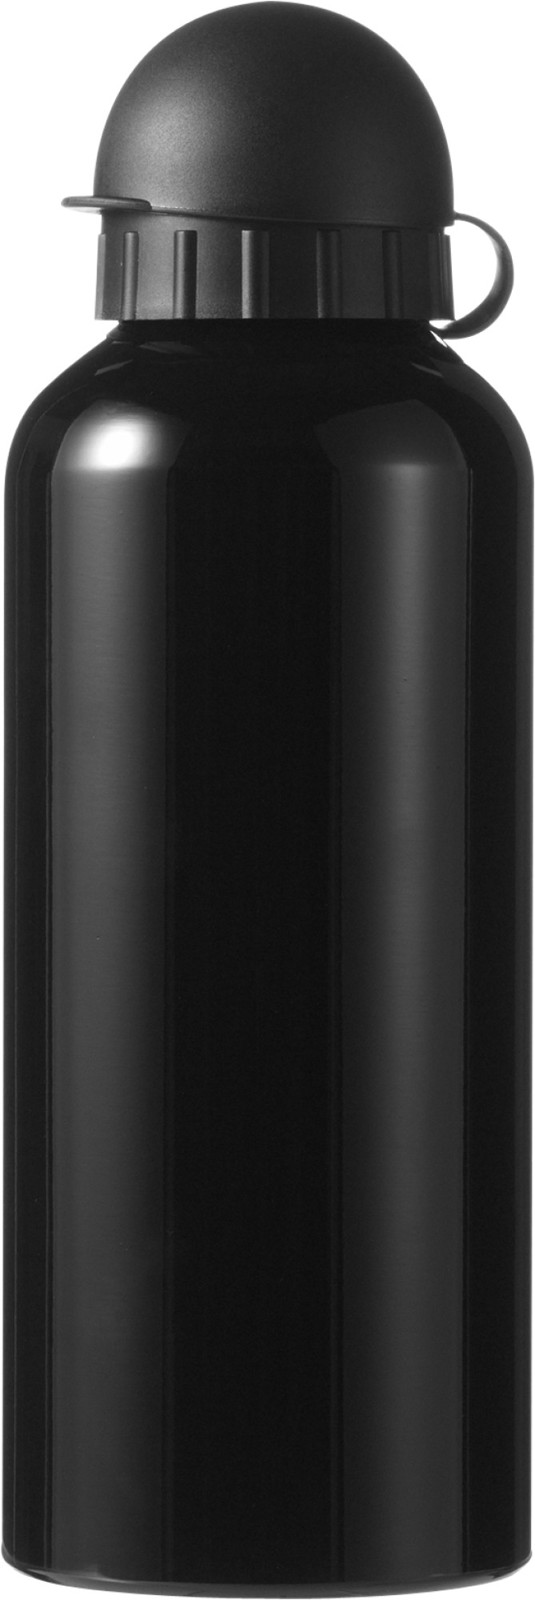 Aluminium bottle - Black